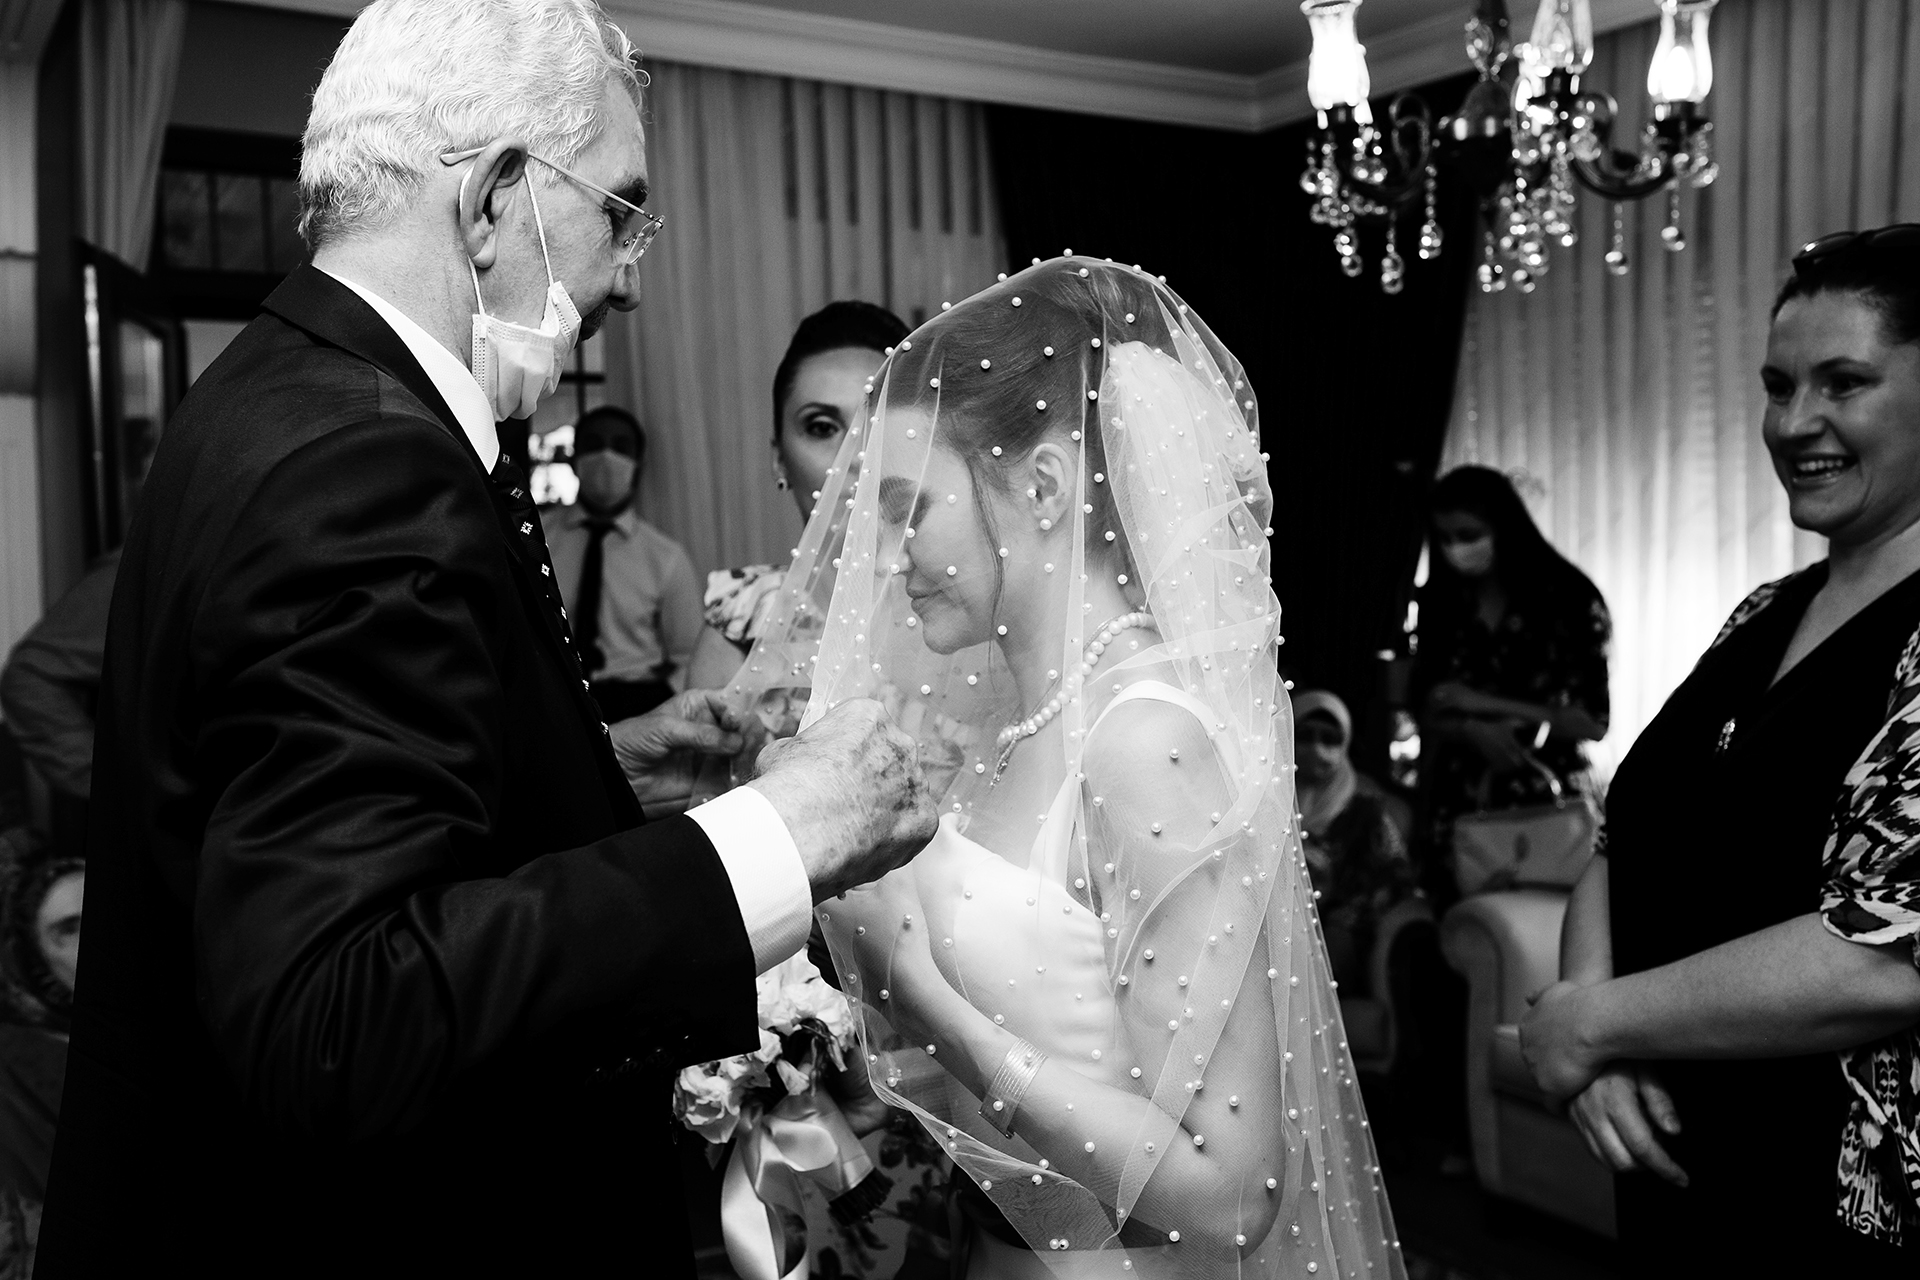 Istanbul, Turkey Bodrum, Belediye Office Wedding Photo | The bride's uncle taking the role of a recently lost father